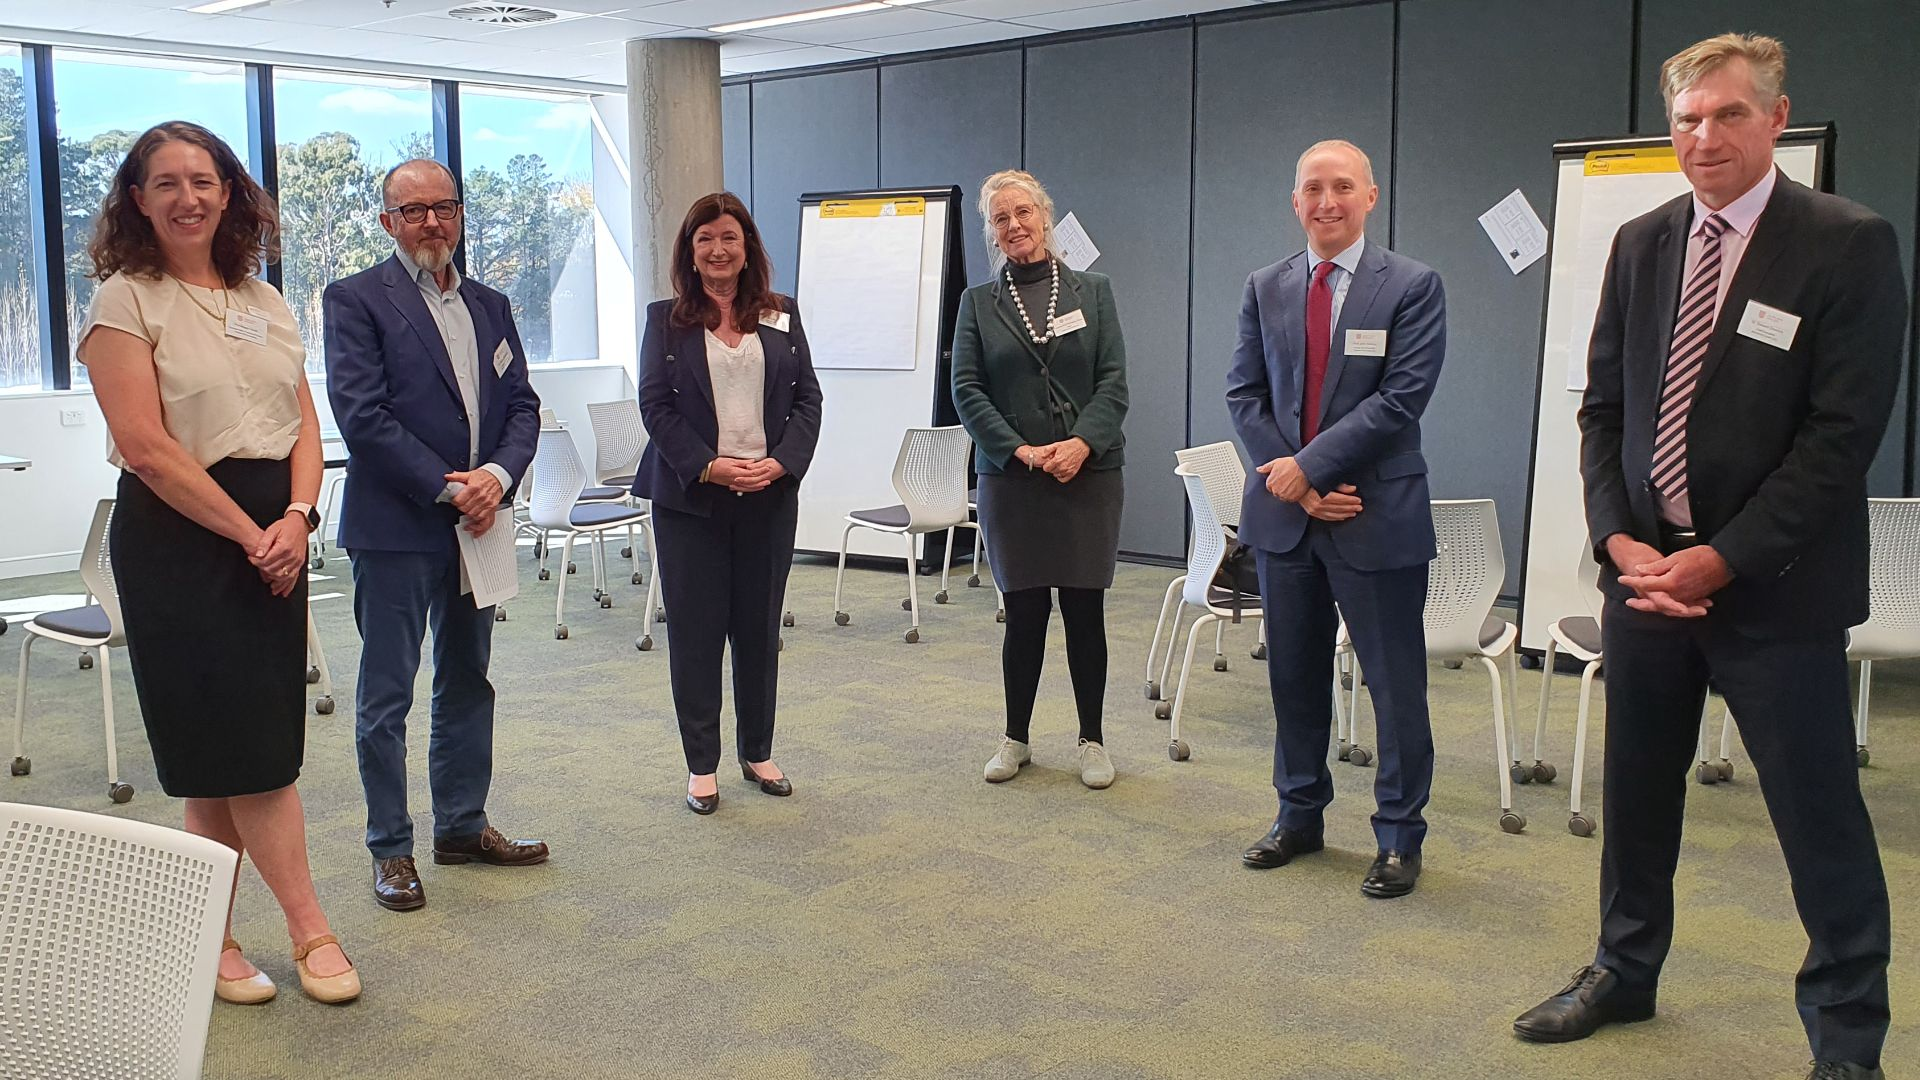 Academics and experts gather to workshop future of rural health research